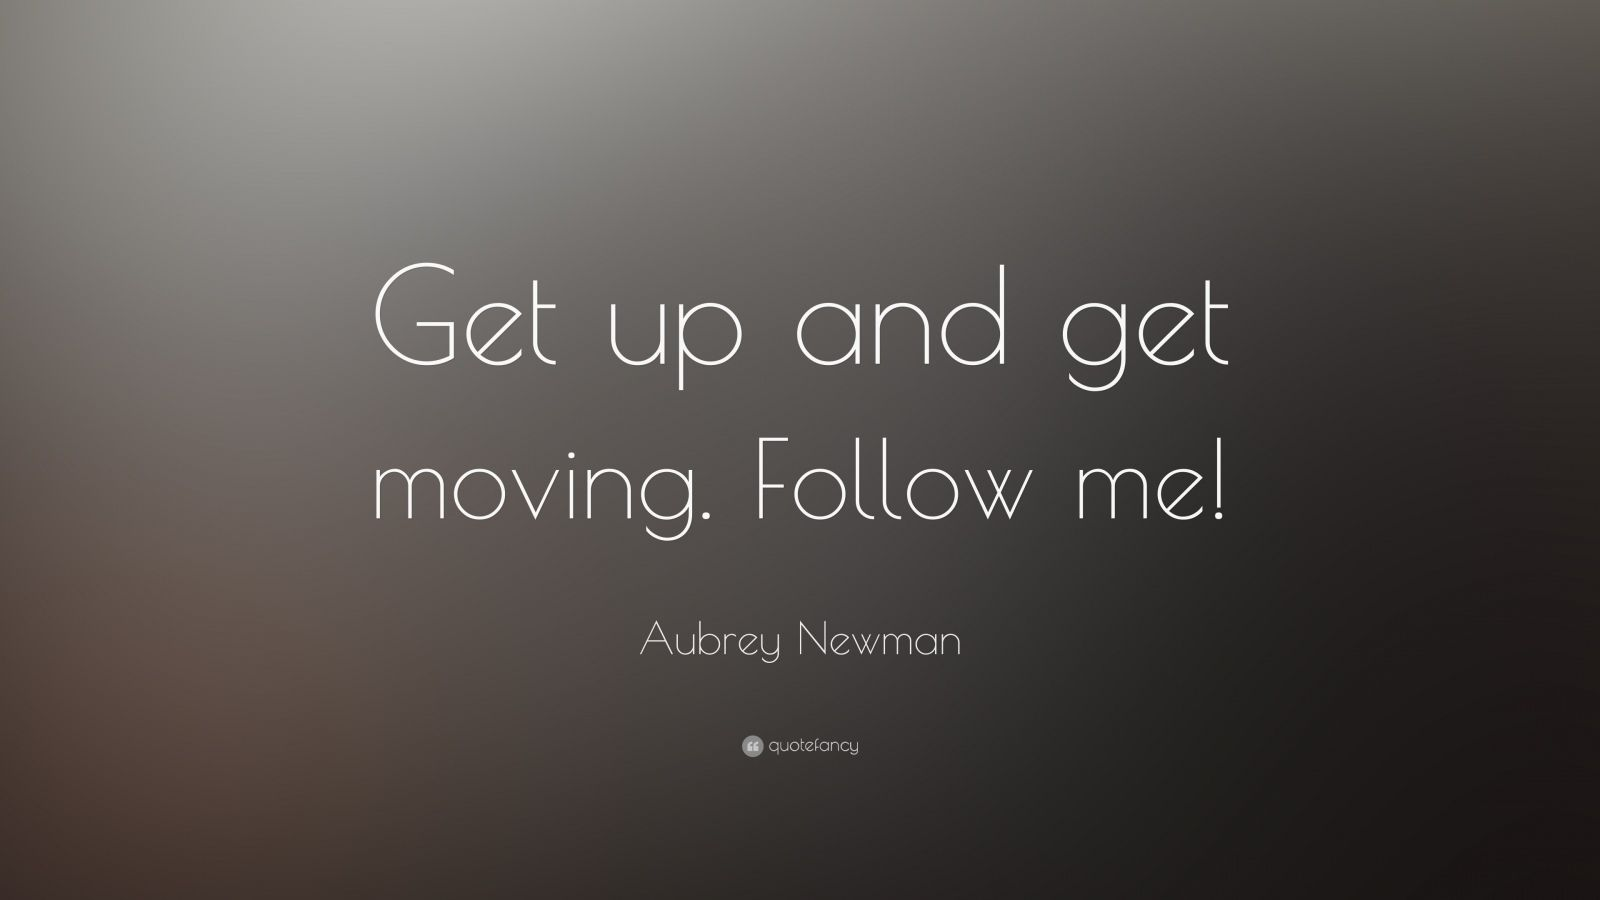 Aubrey Newman Quote: Get up and get moving. Follow me!